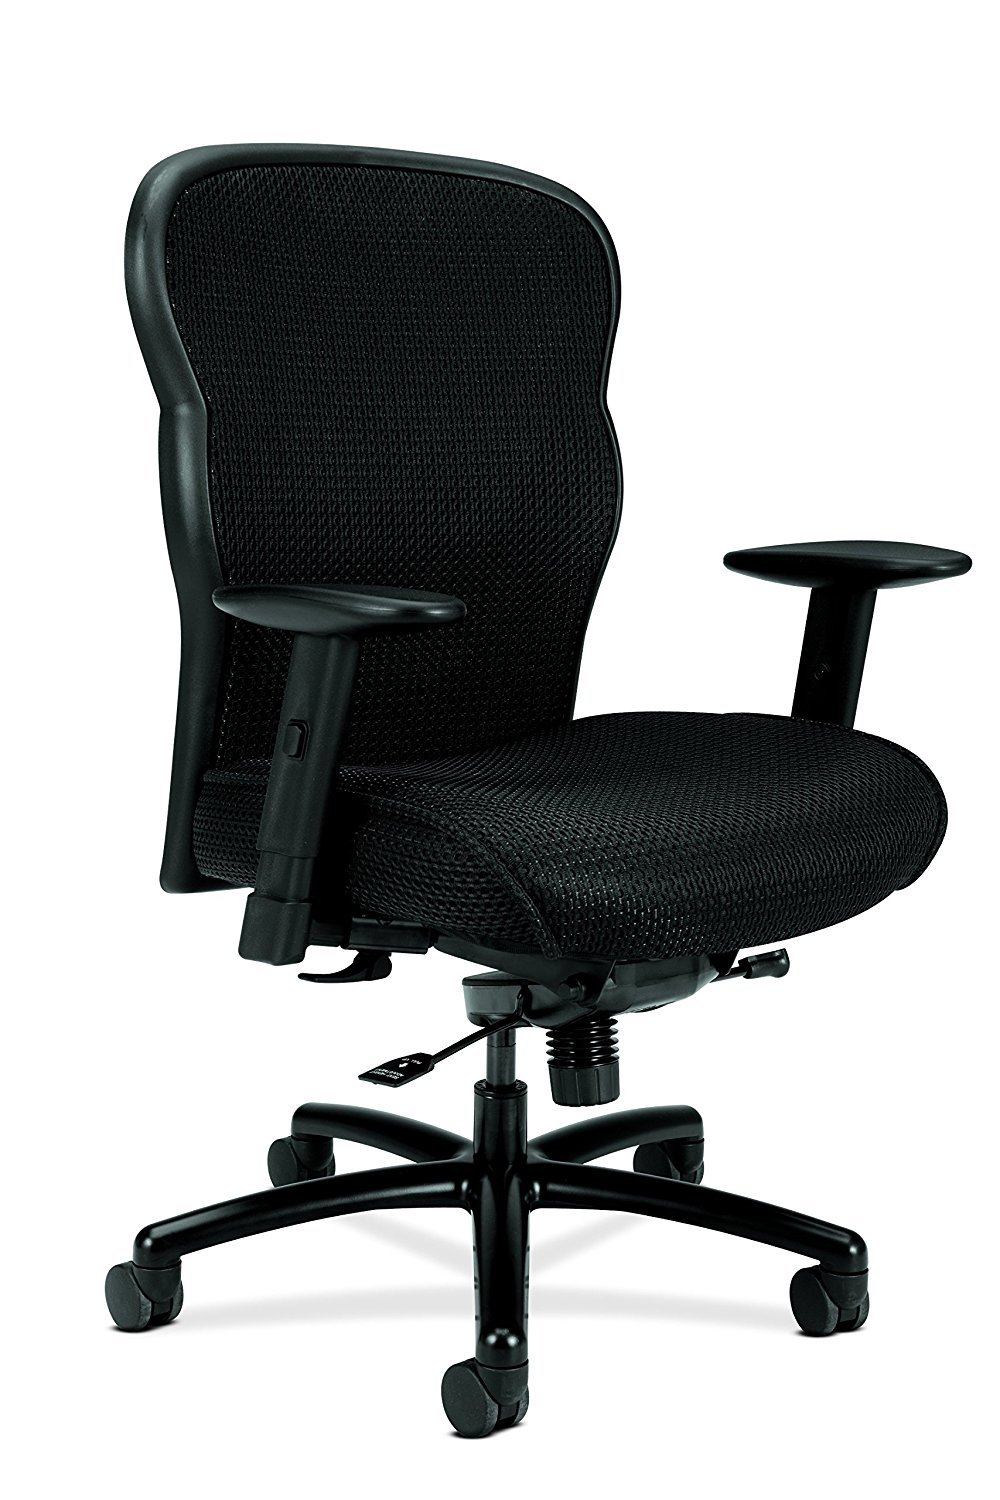 most comfortable office chair under 500